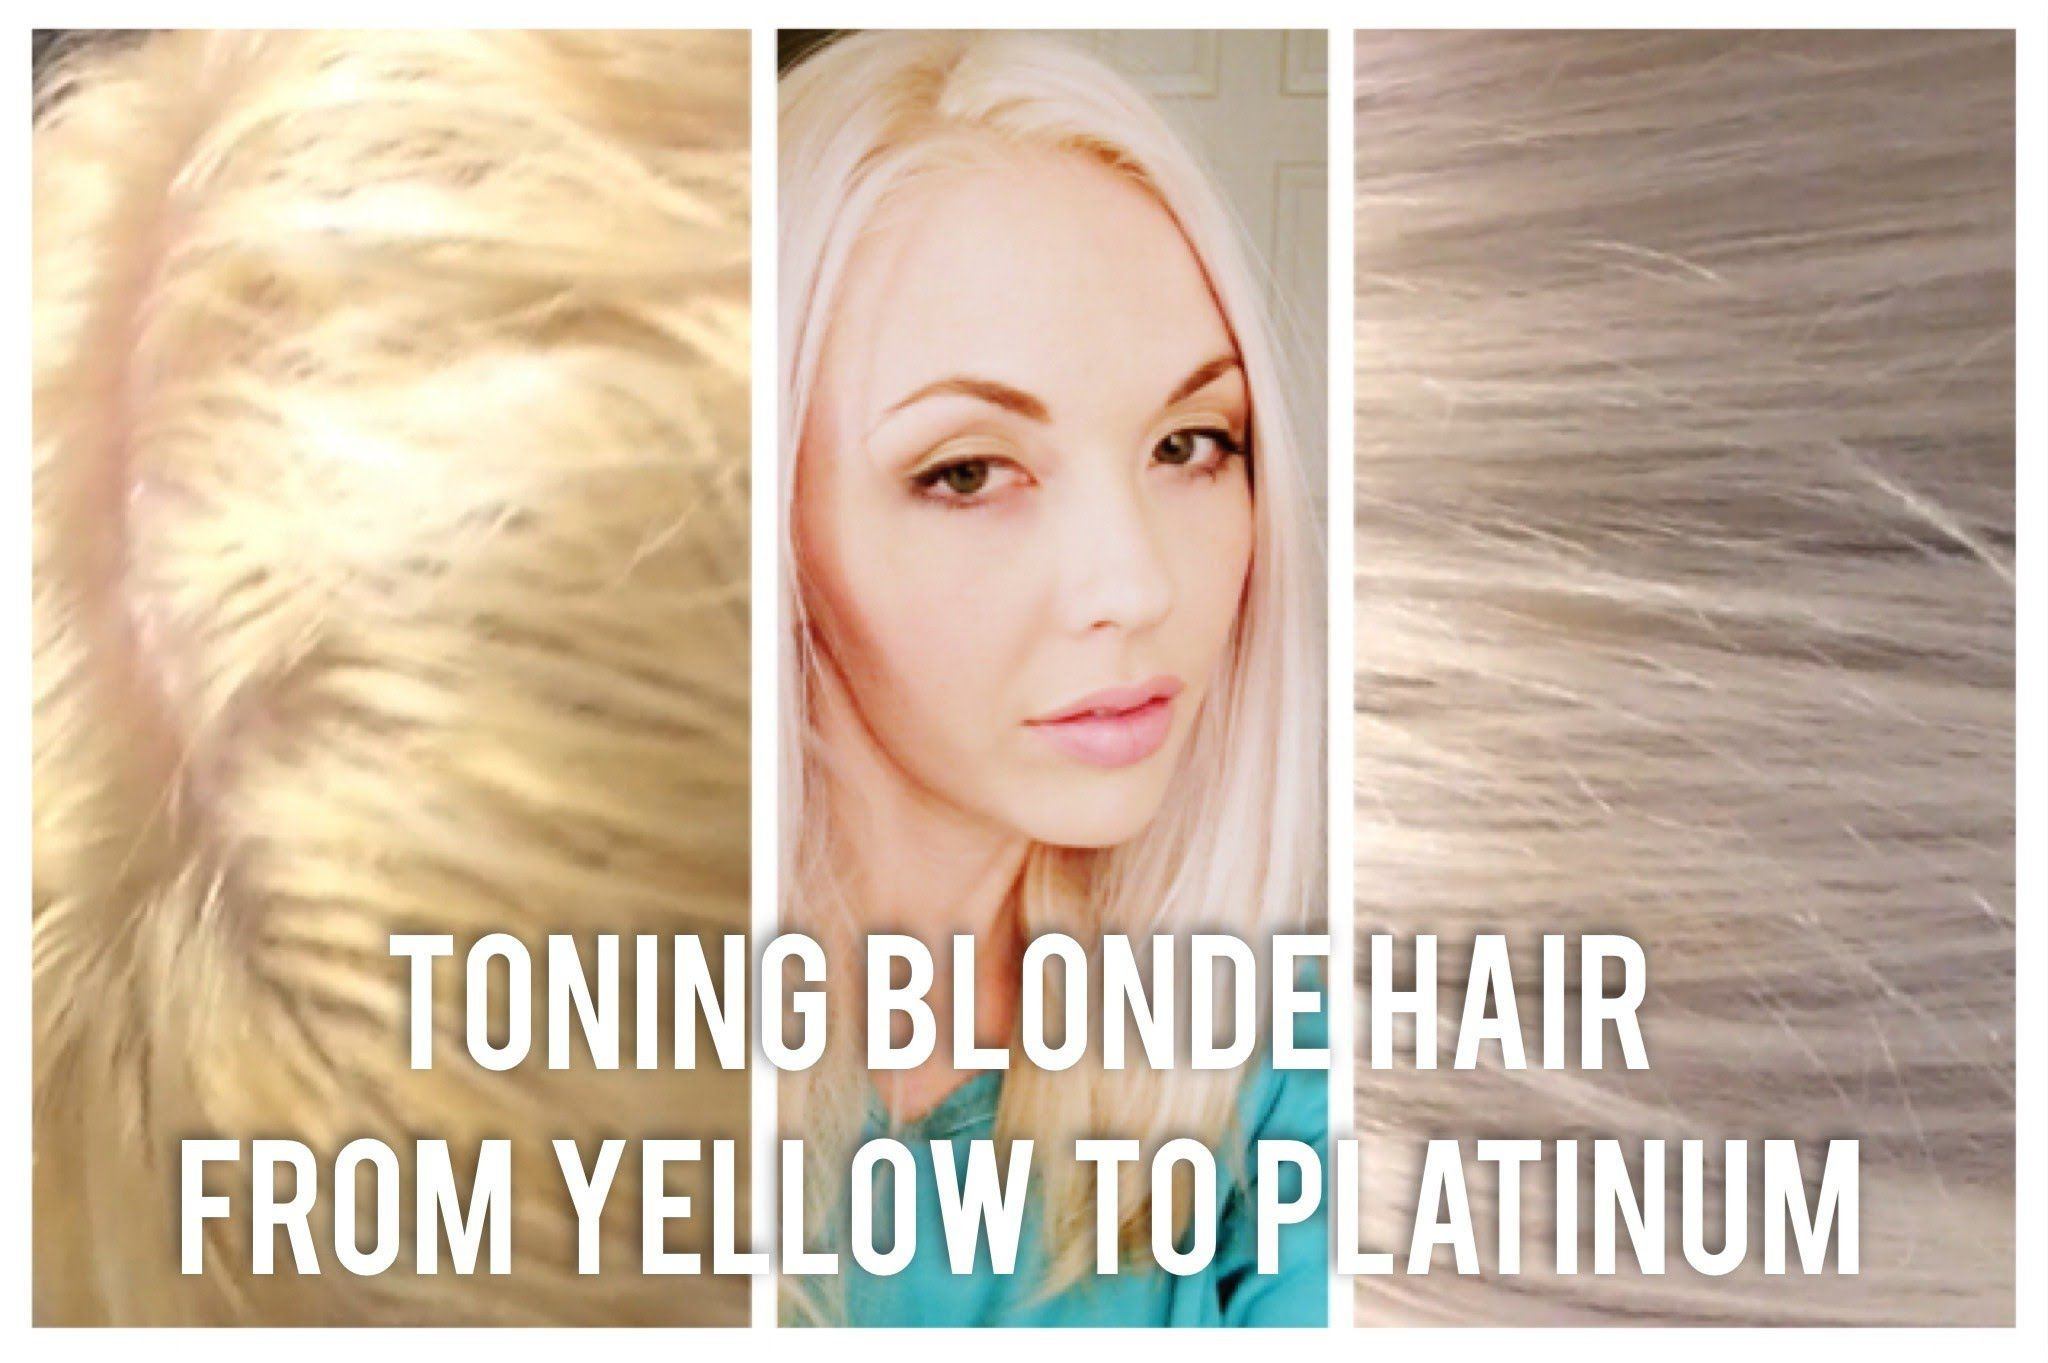 Diy u toning bleached blonde hair from brassy to platinum at home